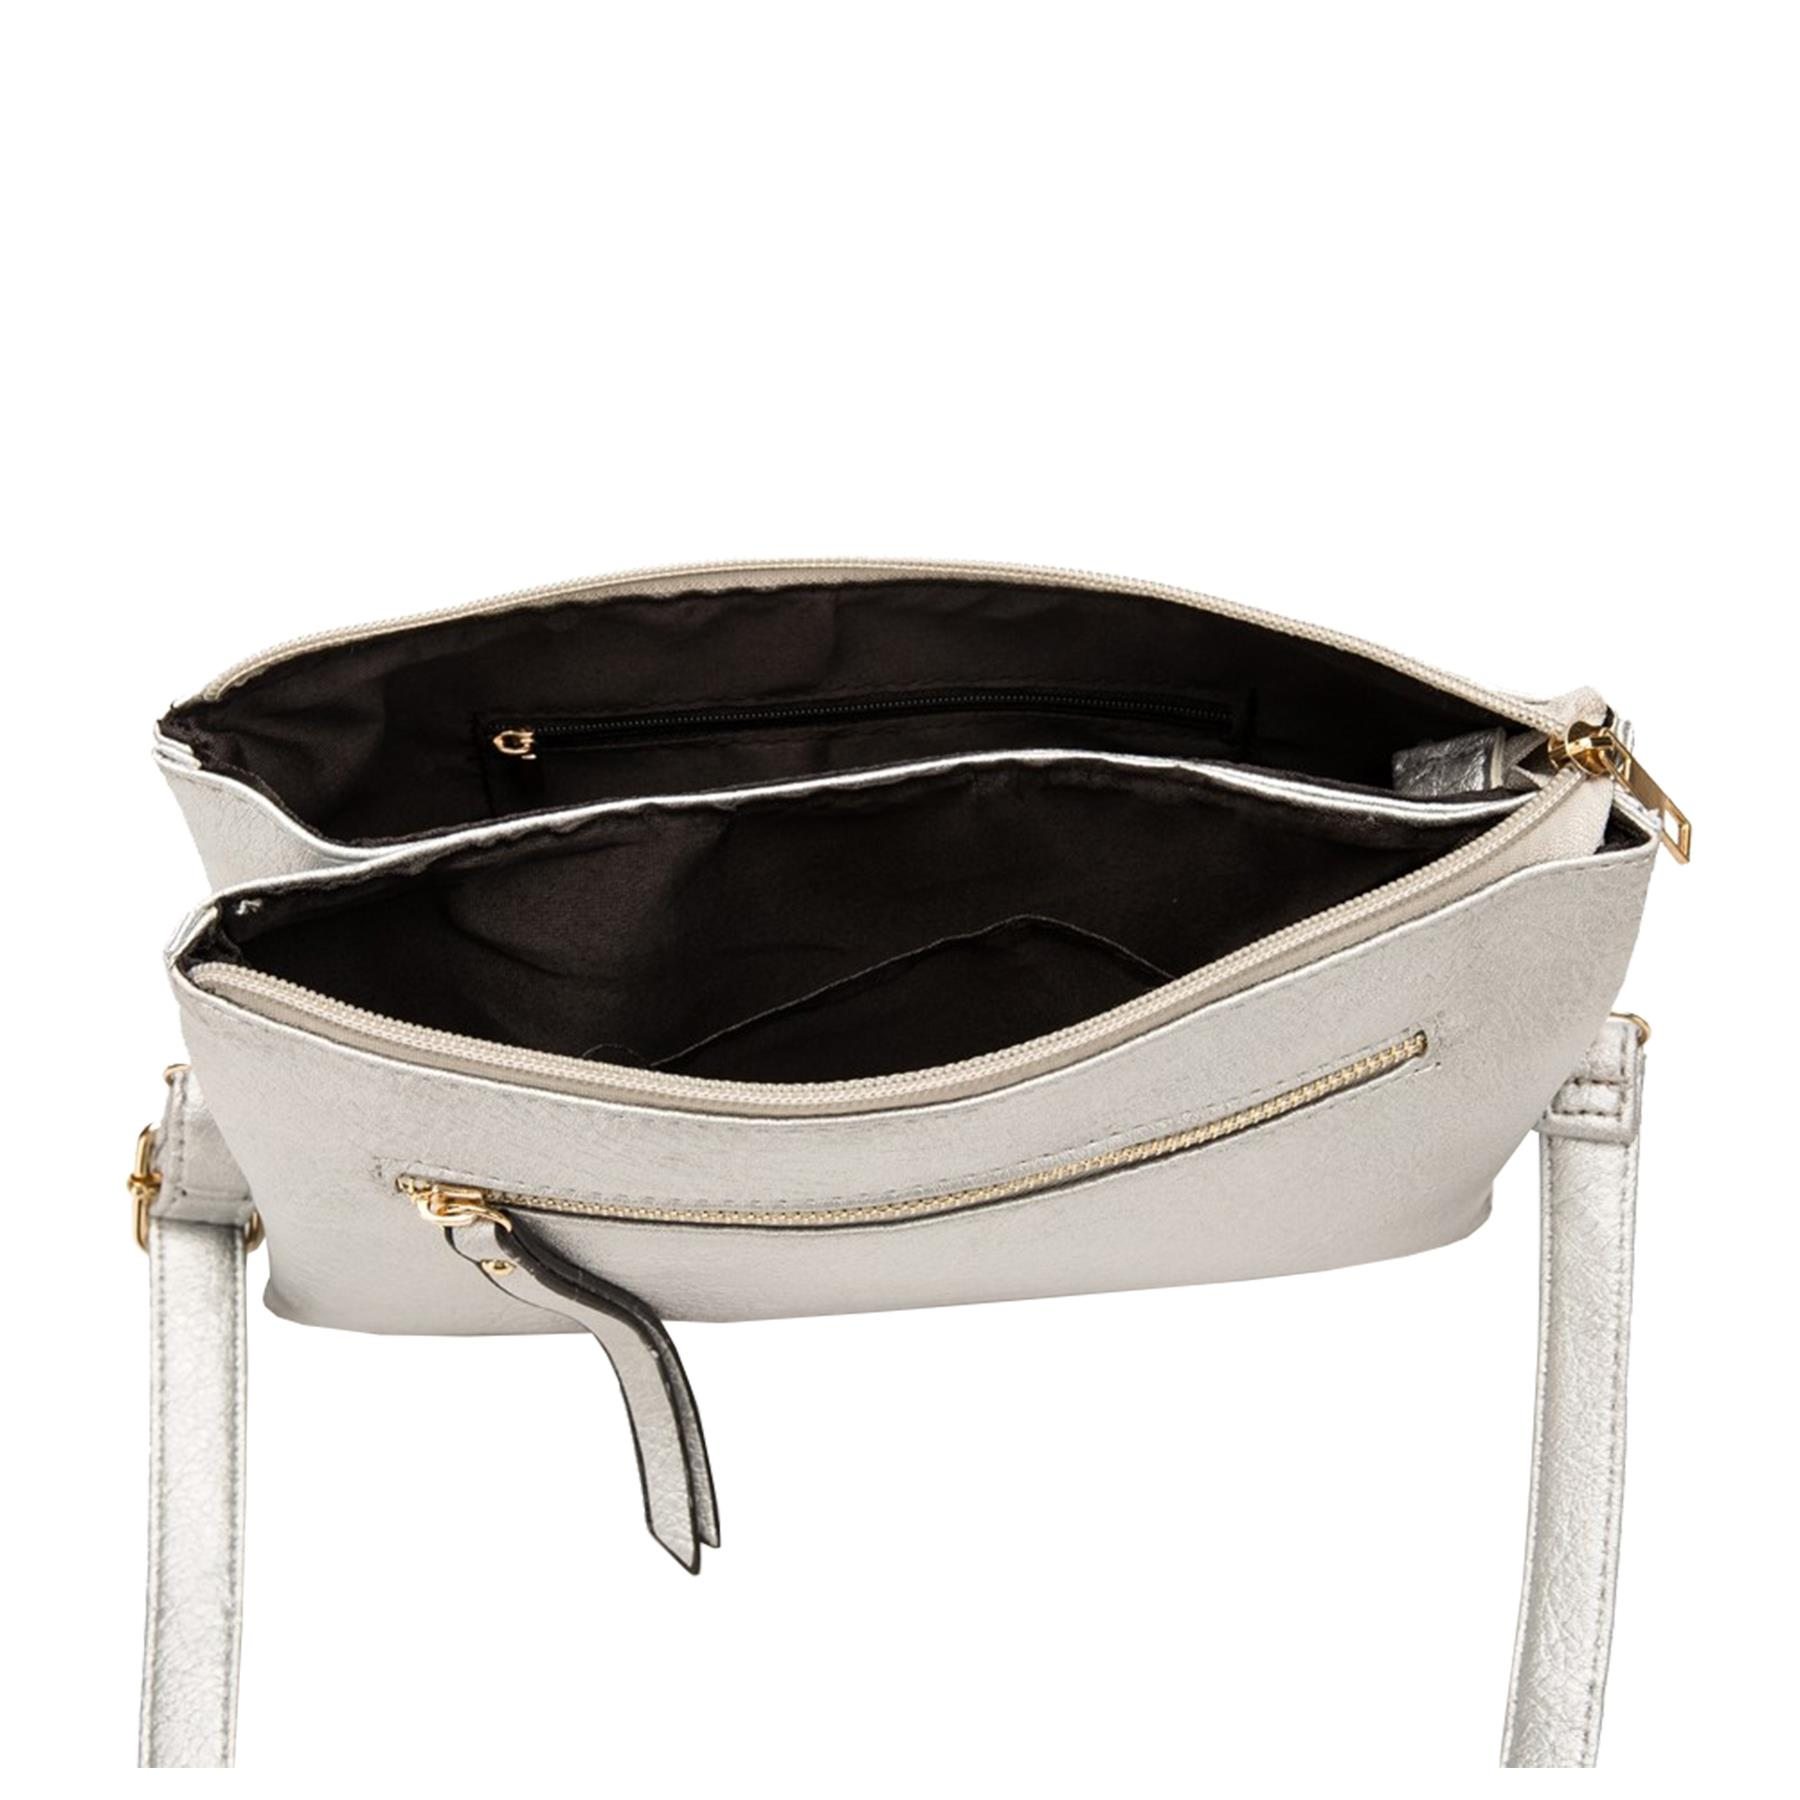 New-Plain-Synthetic-Leather-Women-s-Simple-Casual-Cross-Body-Bag thumbnail 13